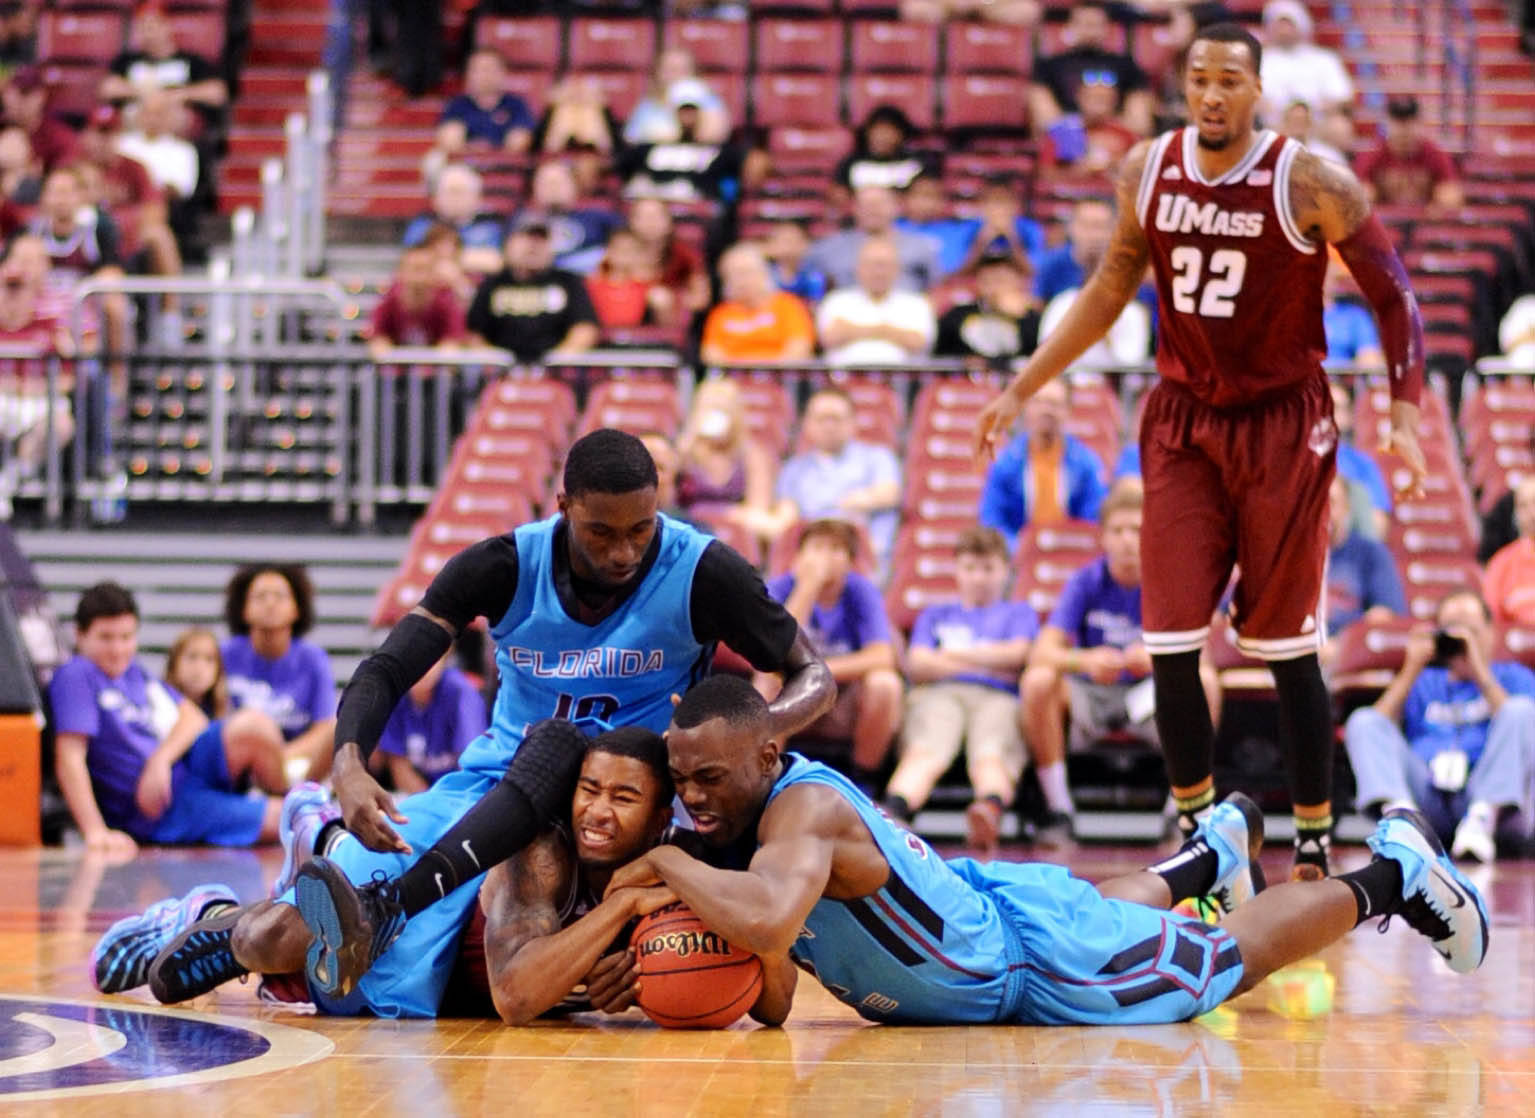 Dec 21, 2013; Sunrise, FL, USA; Florida State Seminoles guard Xavier Rathan-Mayes (right) battles for a loose ball with Massachusetts Minutemen guard Trey Davis (left) as Florida State Seminoles forward Okaro White (top) defends during the first half at BB&T Center. Mandatory Credit: Steve Mitchell-USA TODAY Sports